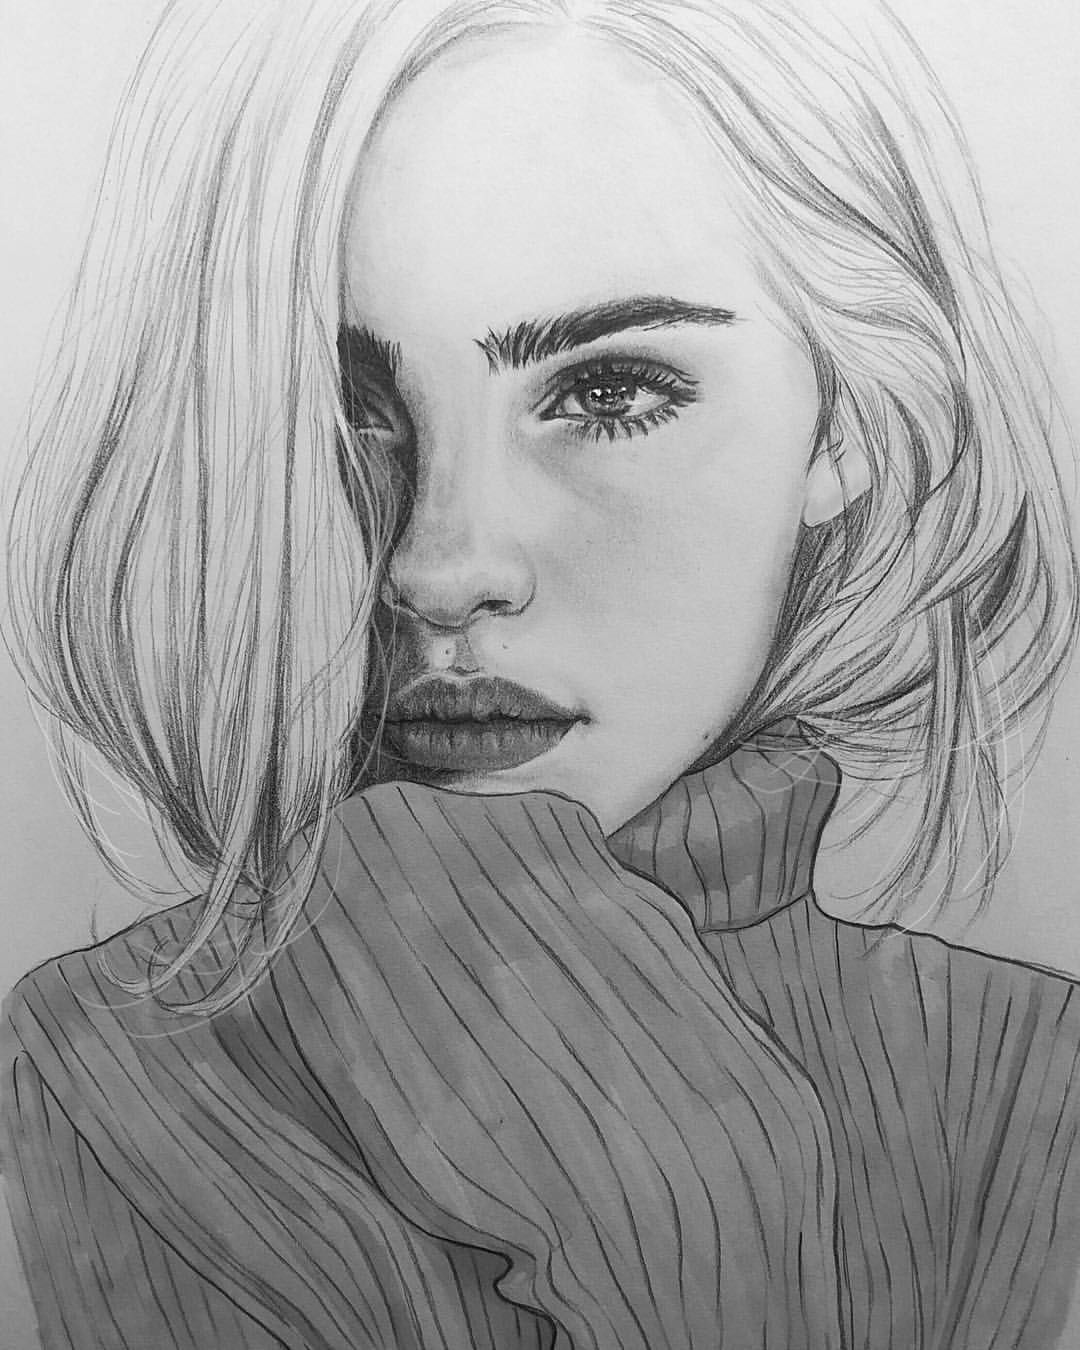 I love blackandwhite drawings